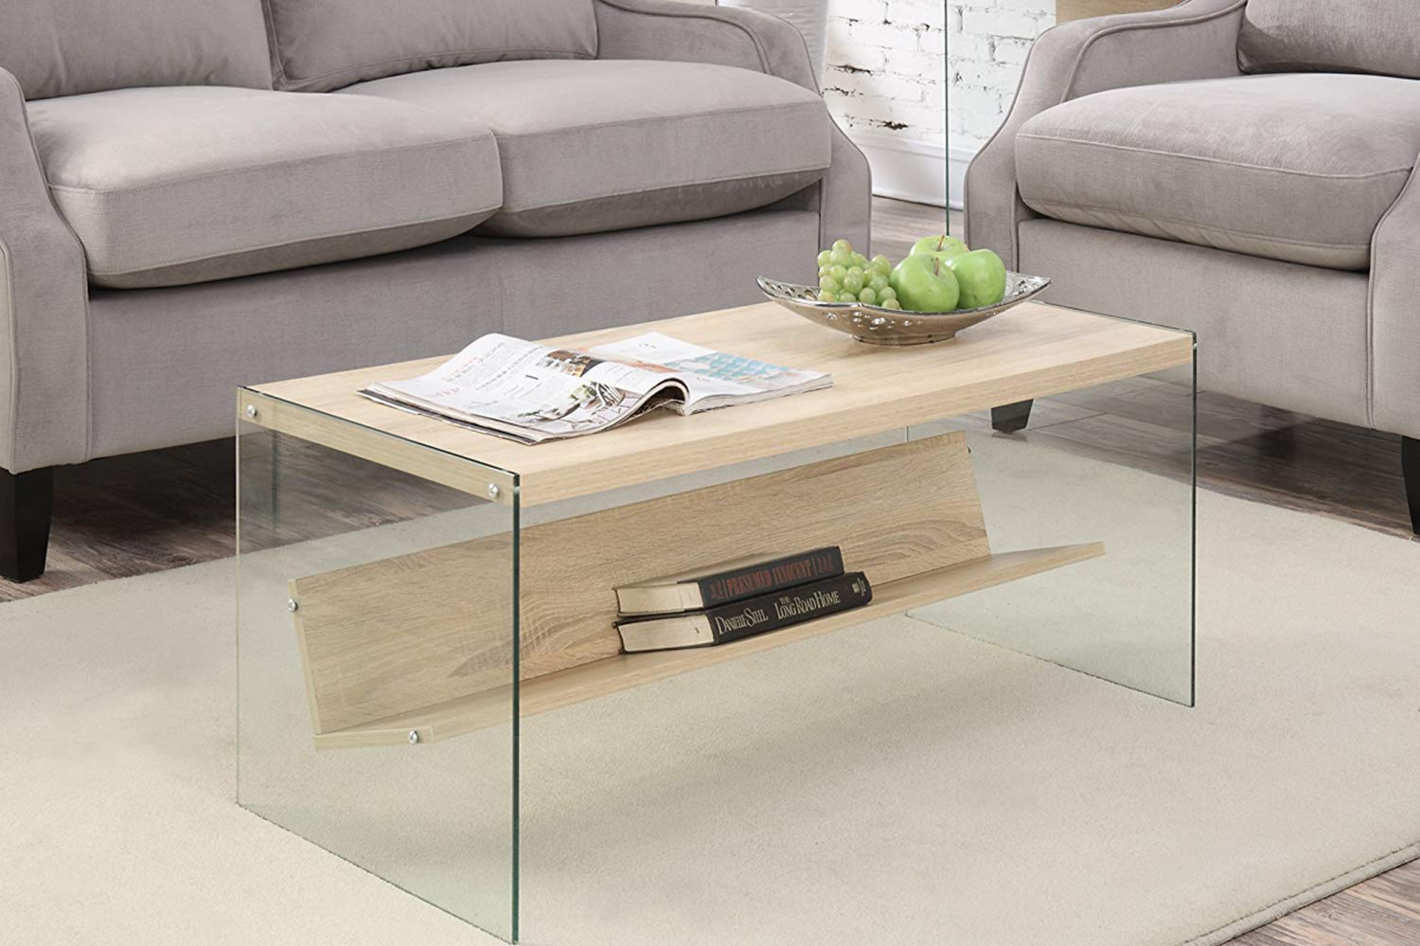 Best Coffee Tables and Living Room Tables 2019